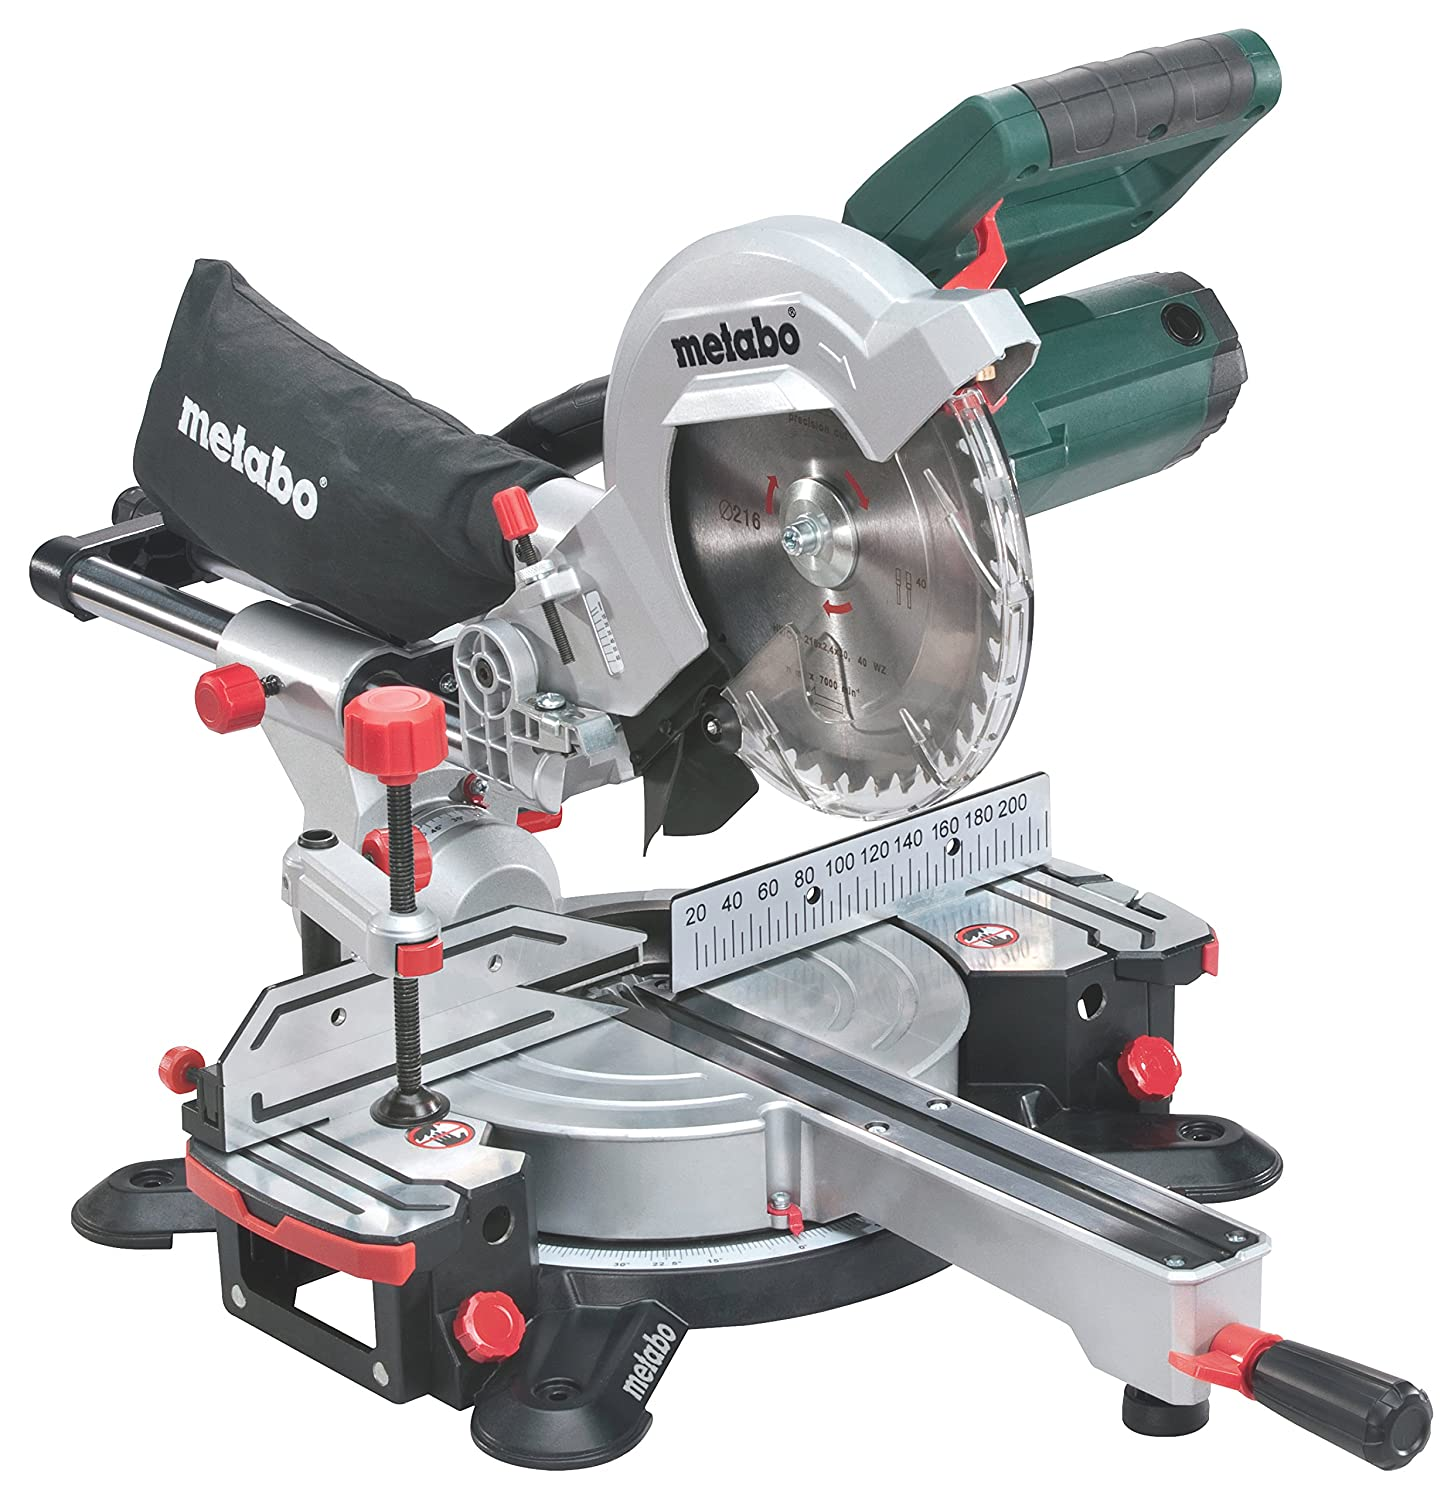 Metabo Kappsäge amazon